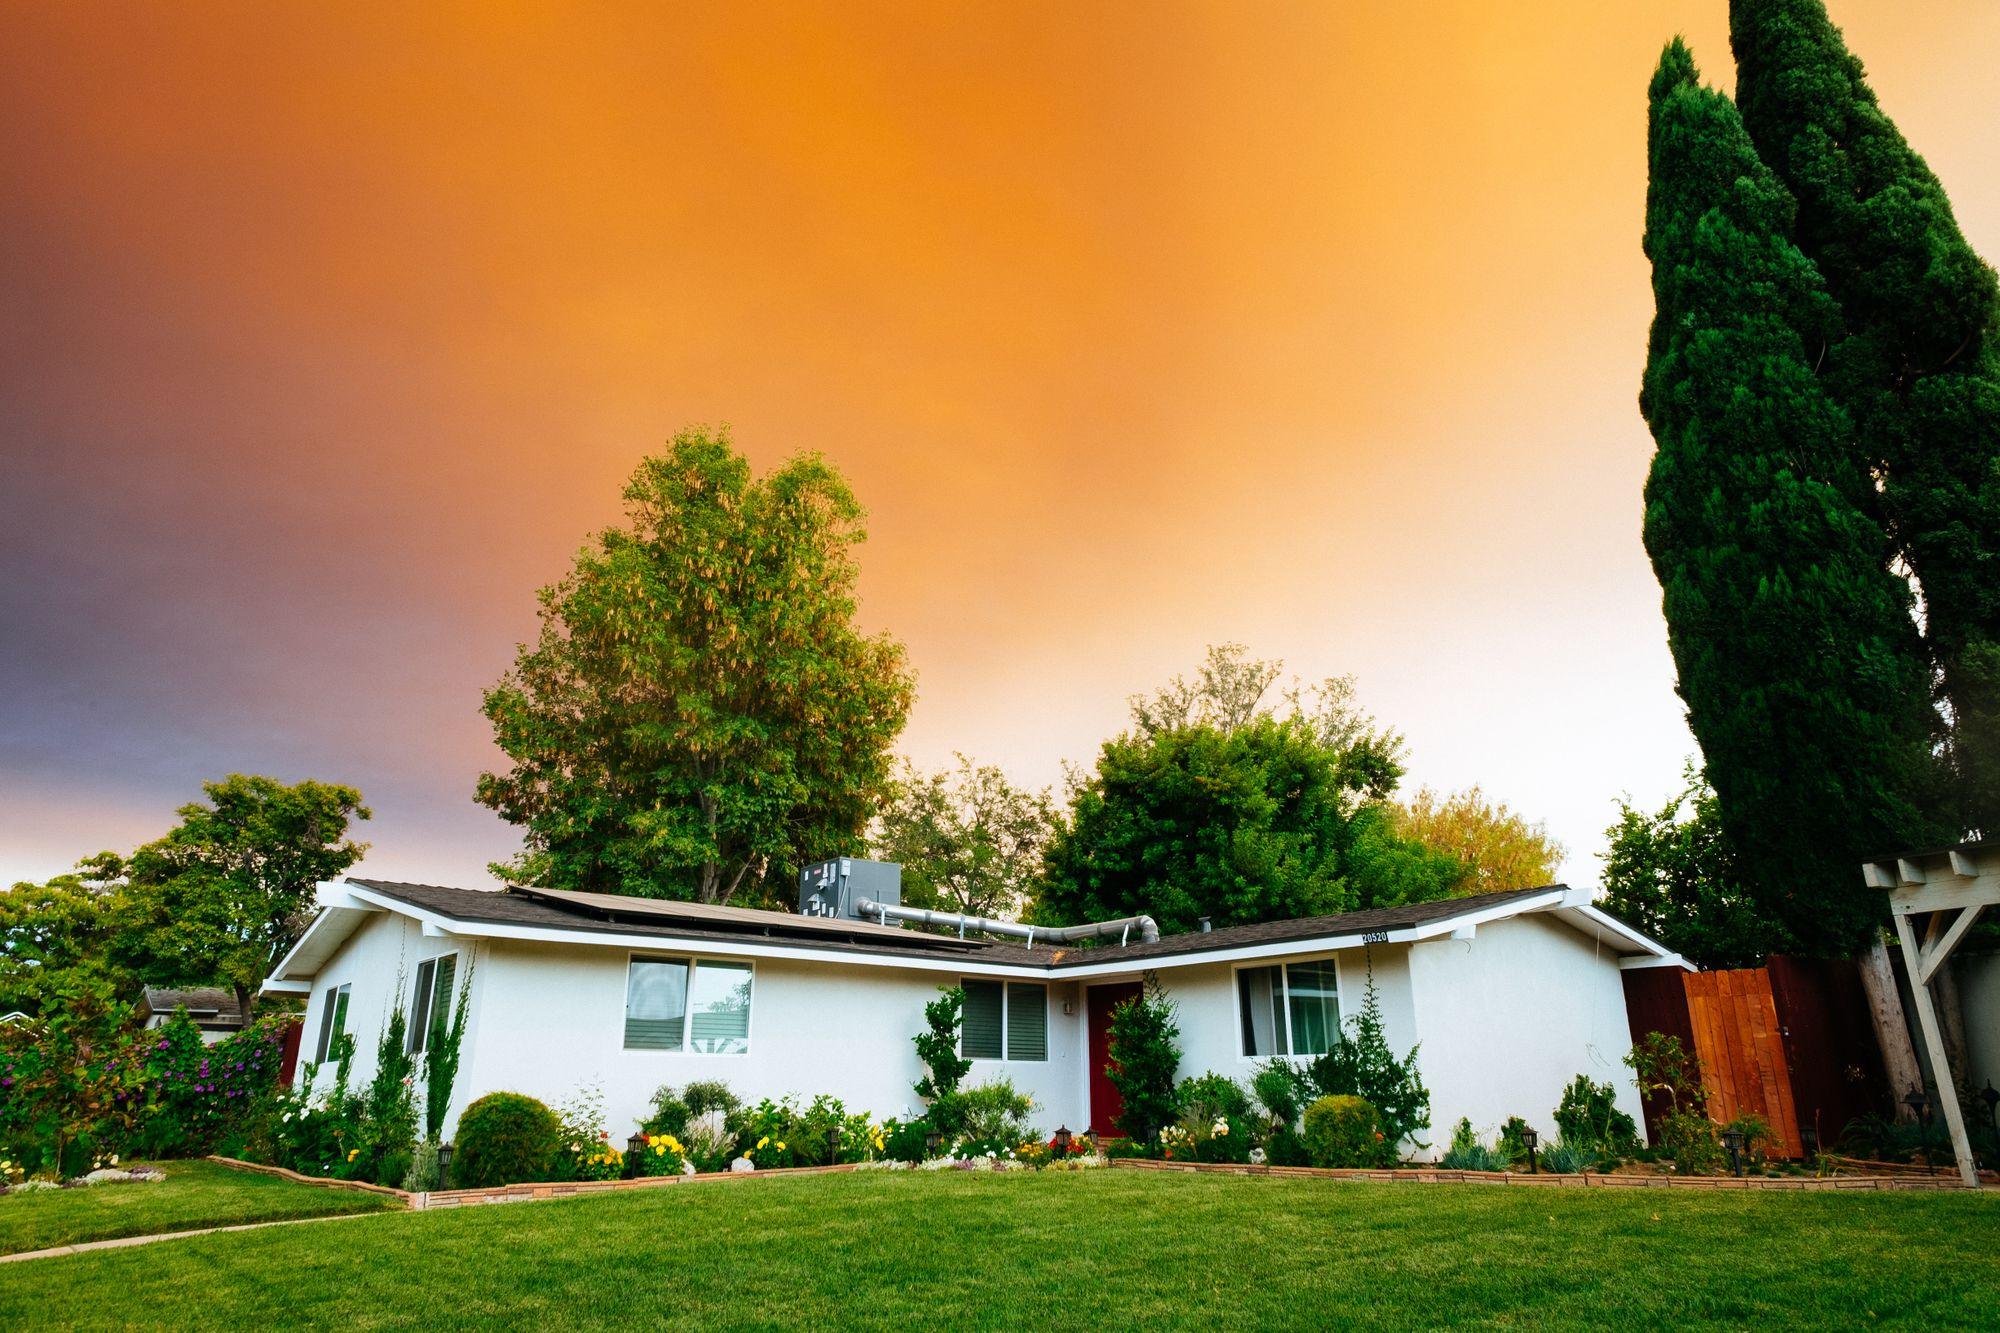 U.S. Homeowners Have Another Chance to Refinance as Mortgage Rates Fall Again